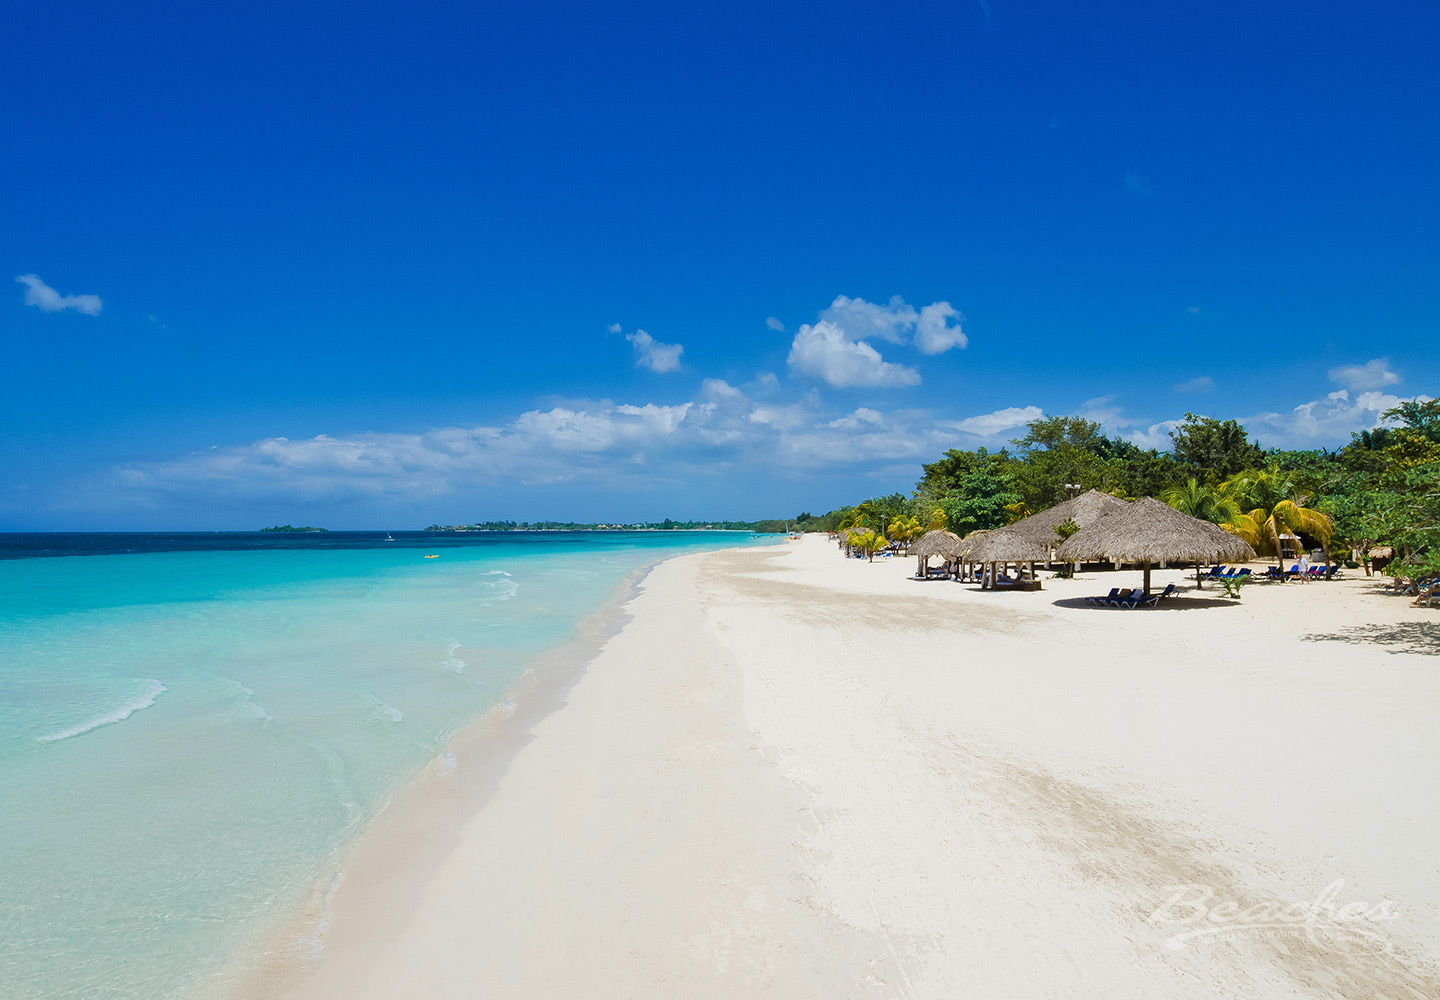 Travel Agency All-Inclusive Resort Beaches Negril 007